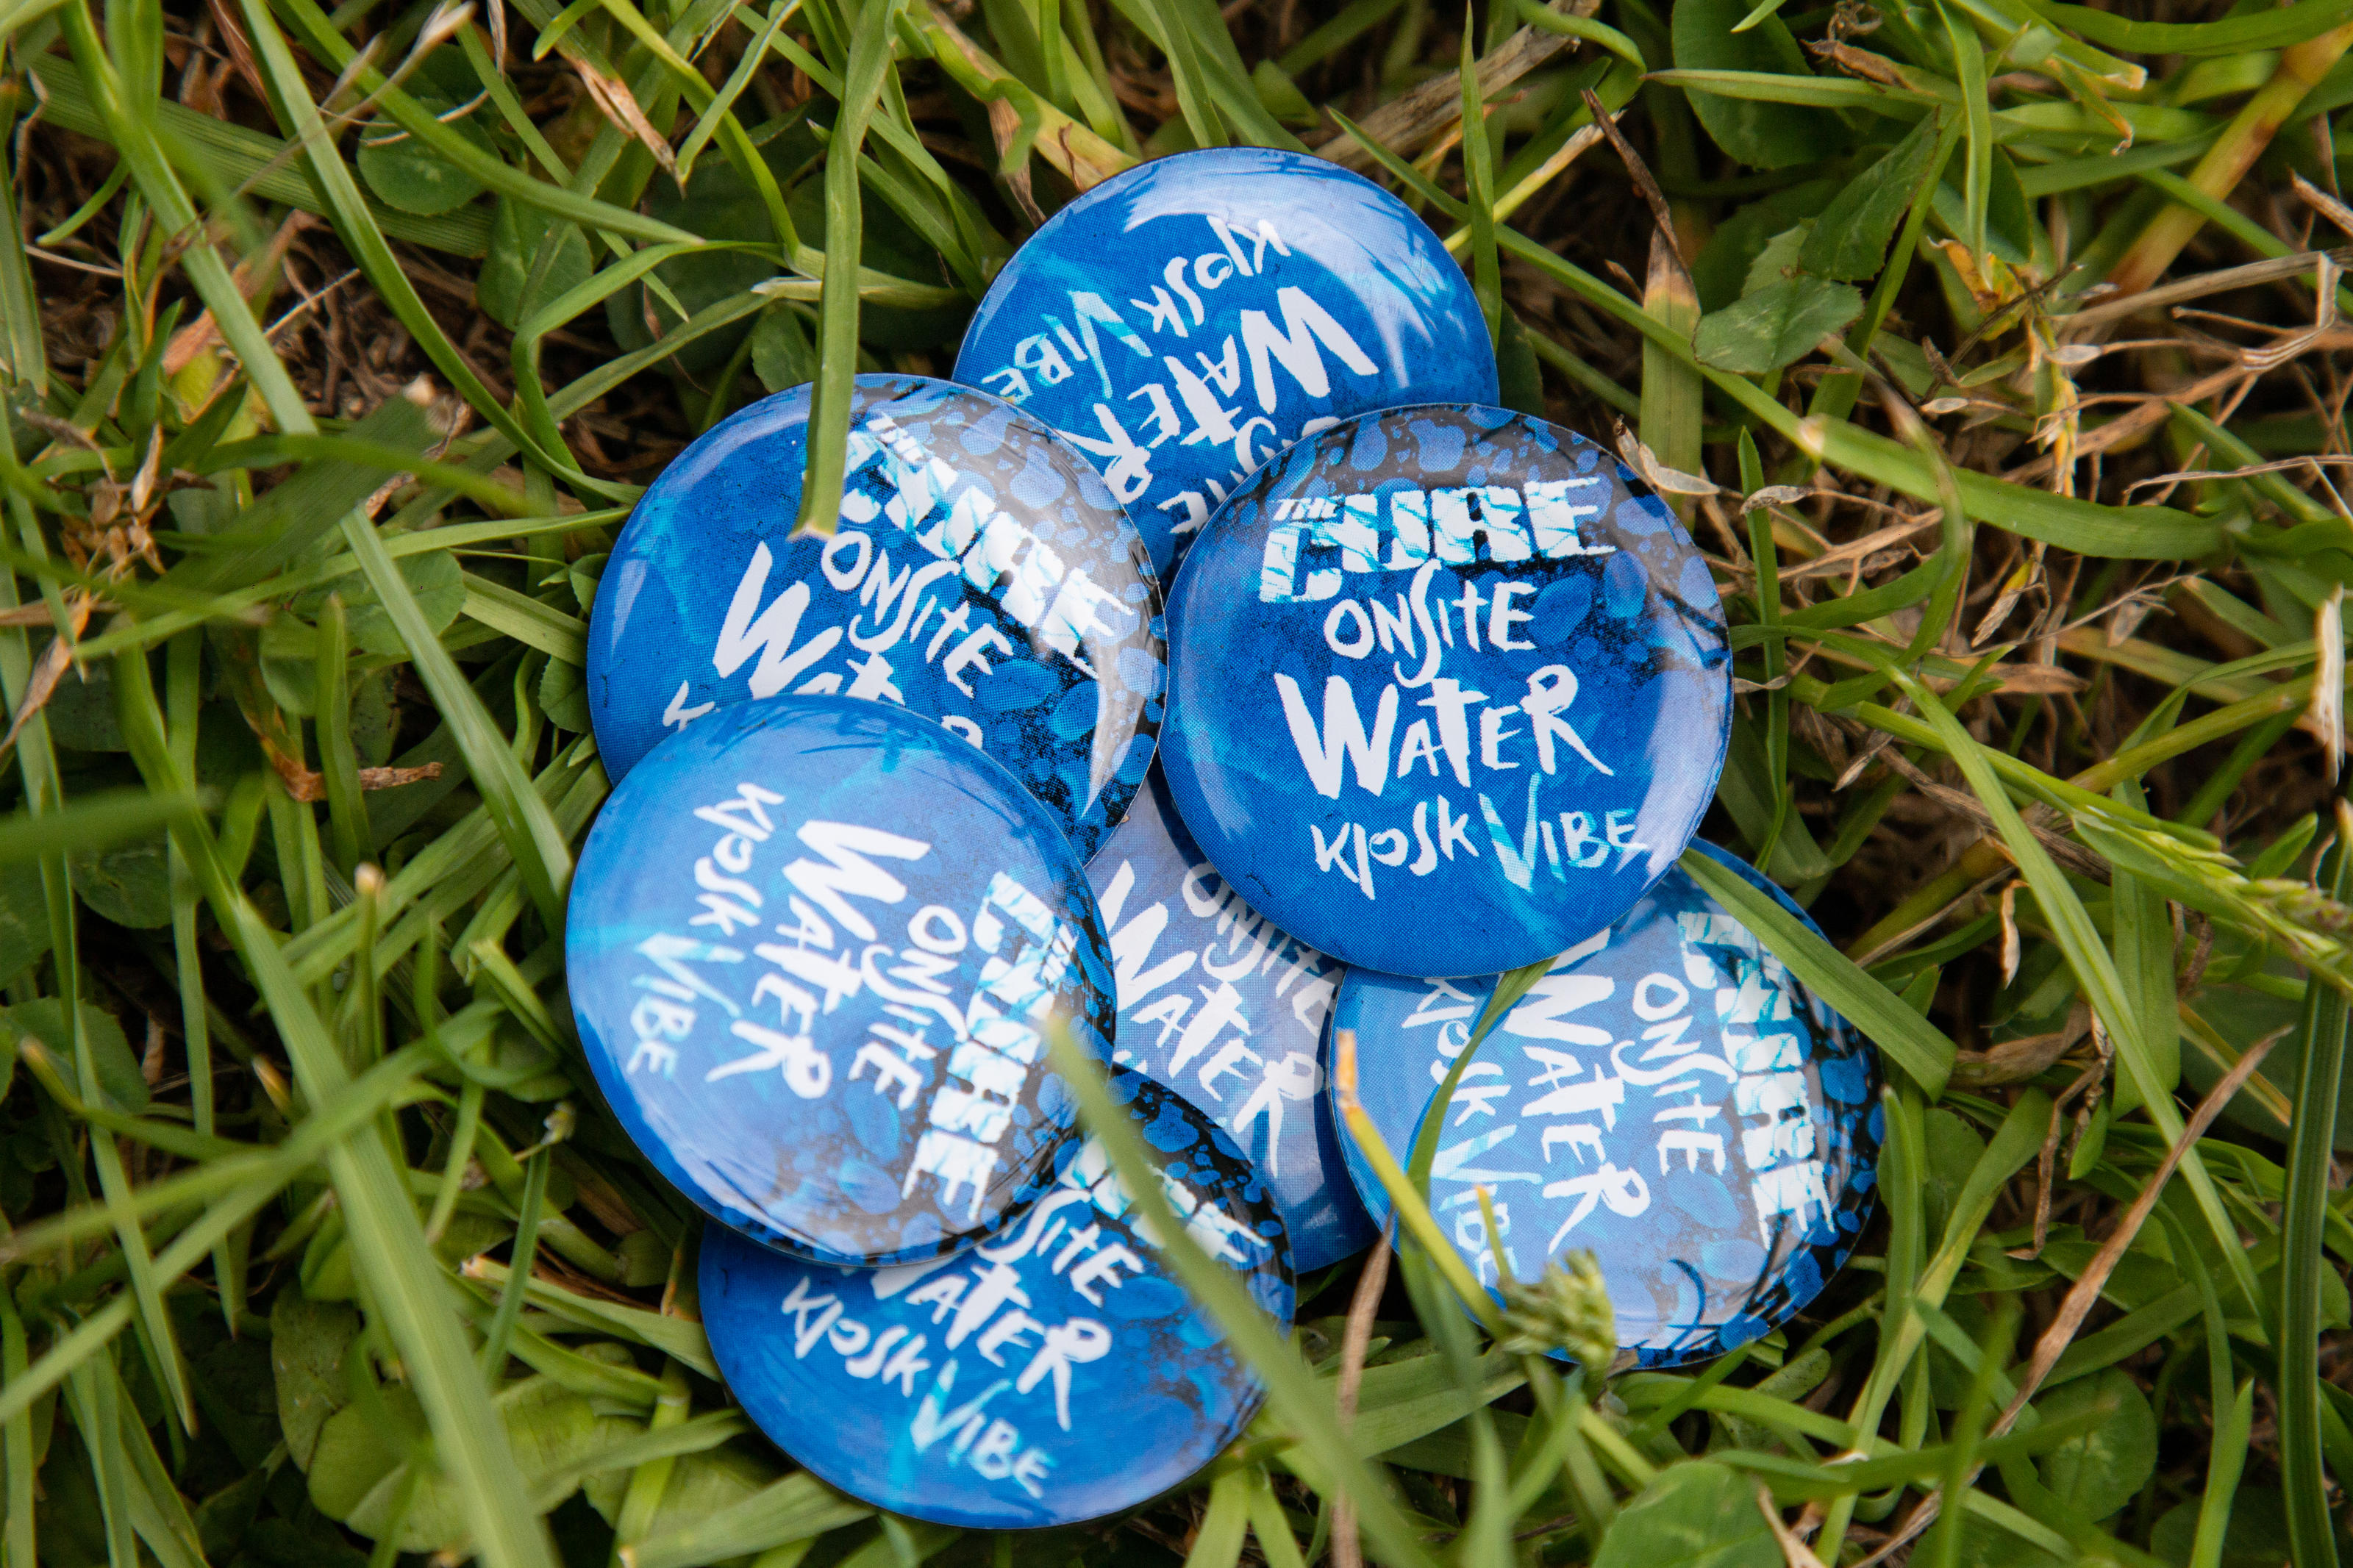 The Cure - Onsite Water Kiosk Vibe - pin badge design for Glastonbury